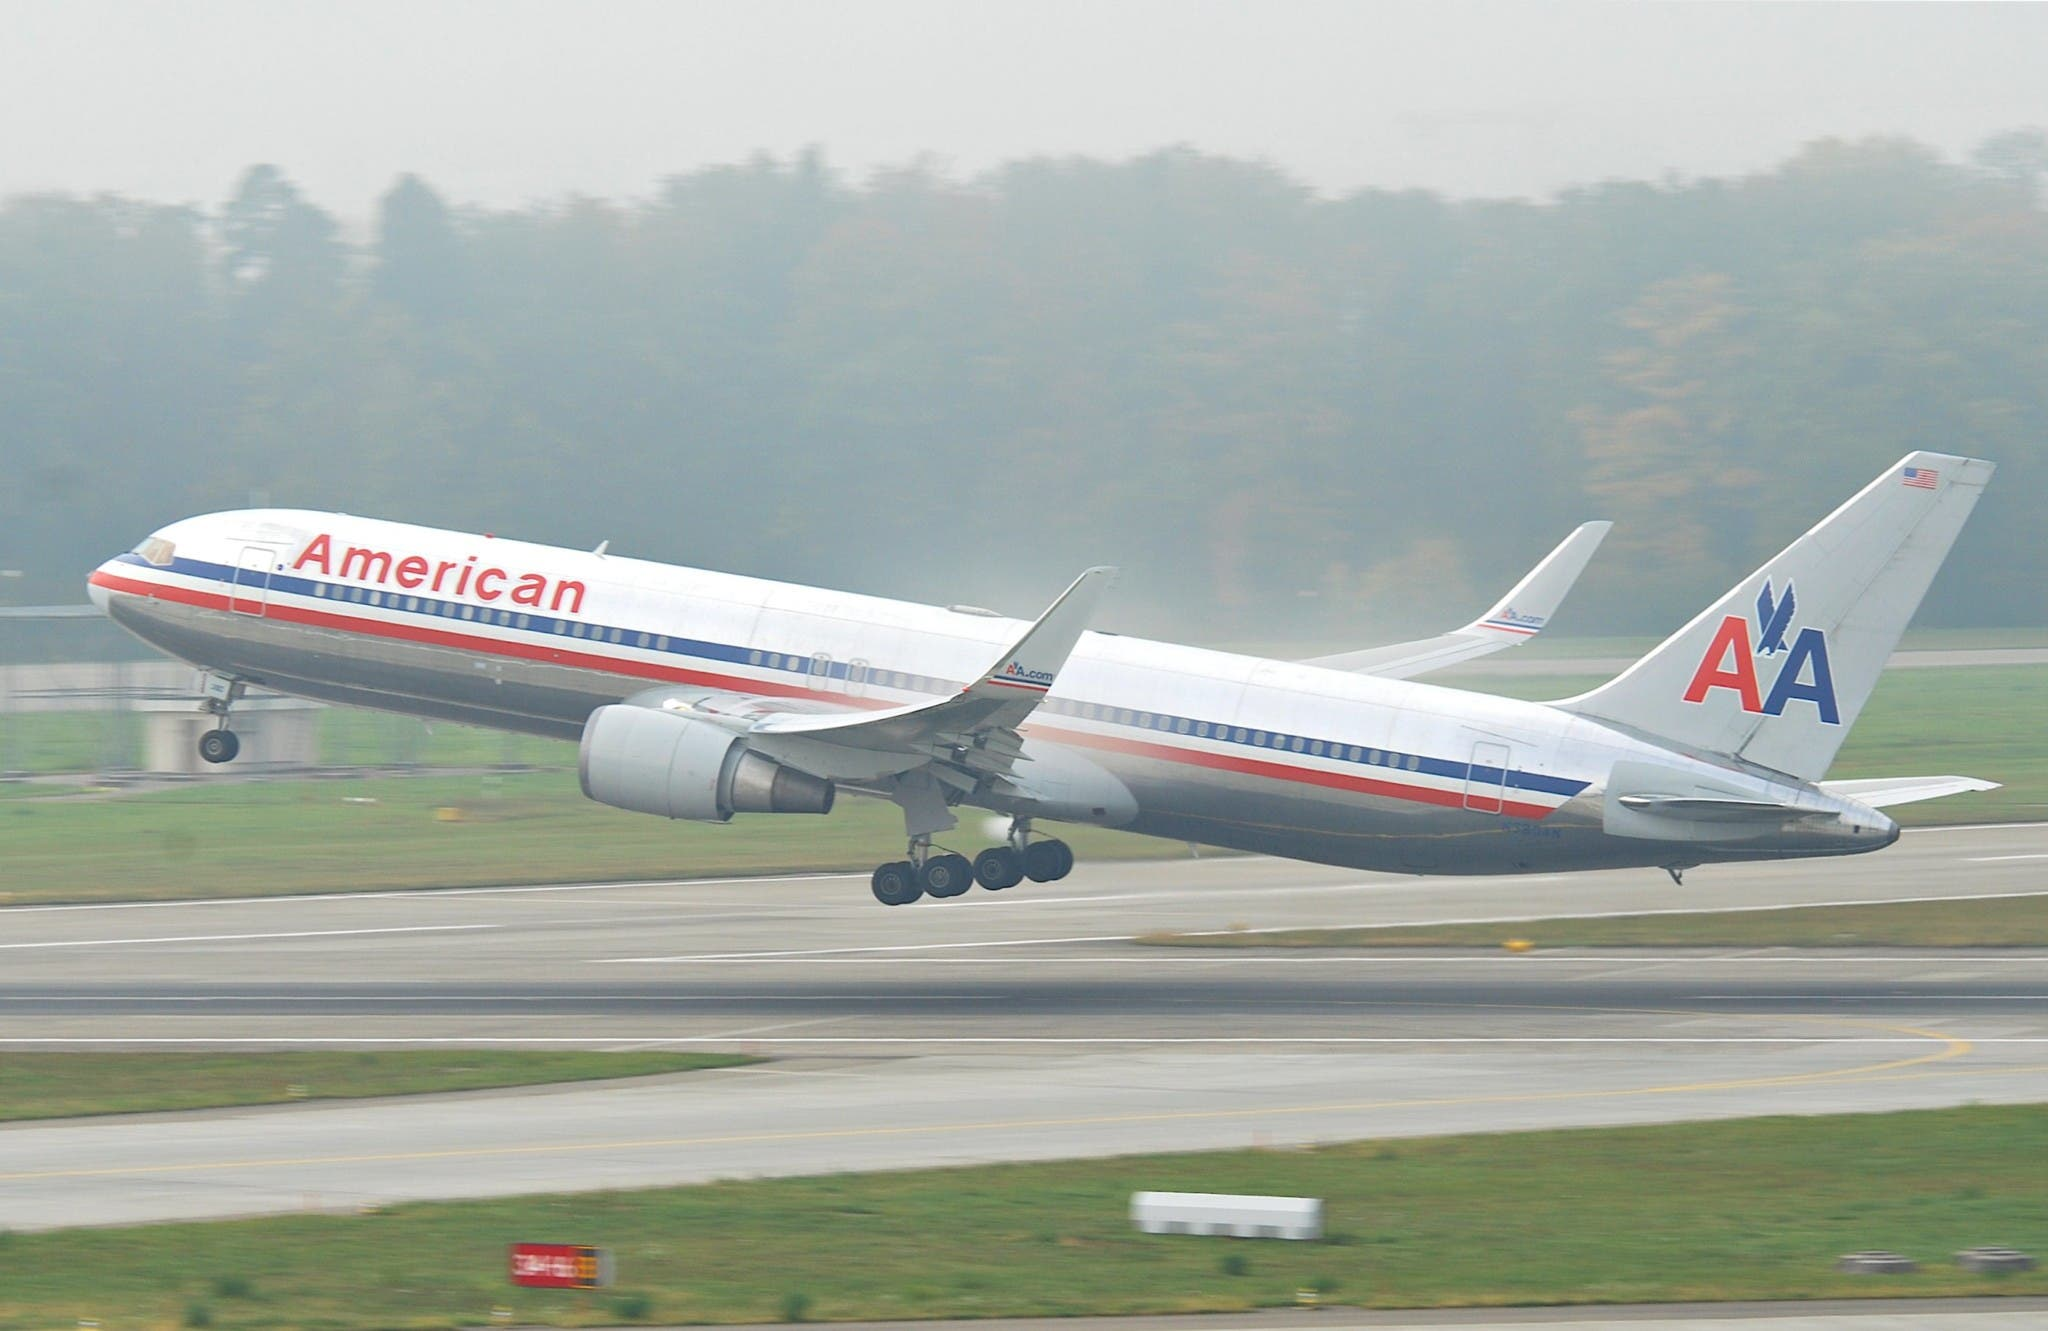 Photographer Records Struggle with American Airlines After $20,000 in Gear Damaged